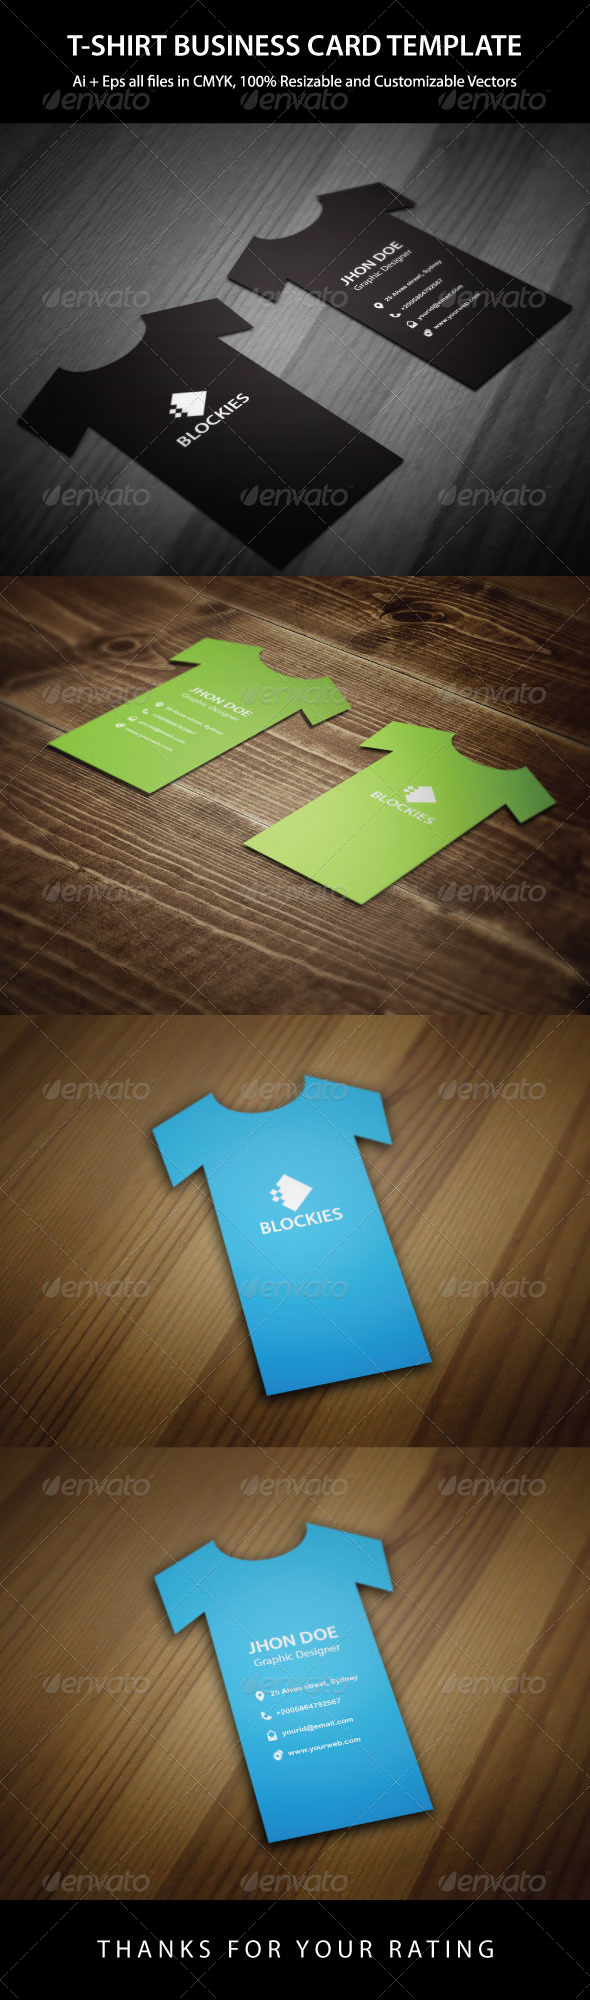 T-Shirt Business Card Template - Real Objects Business Cards